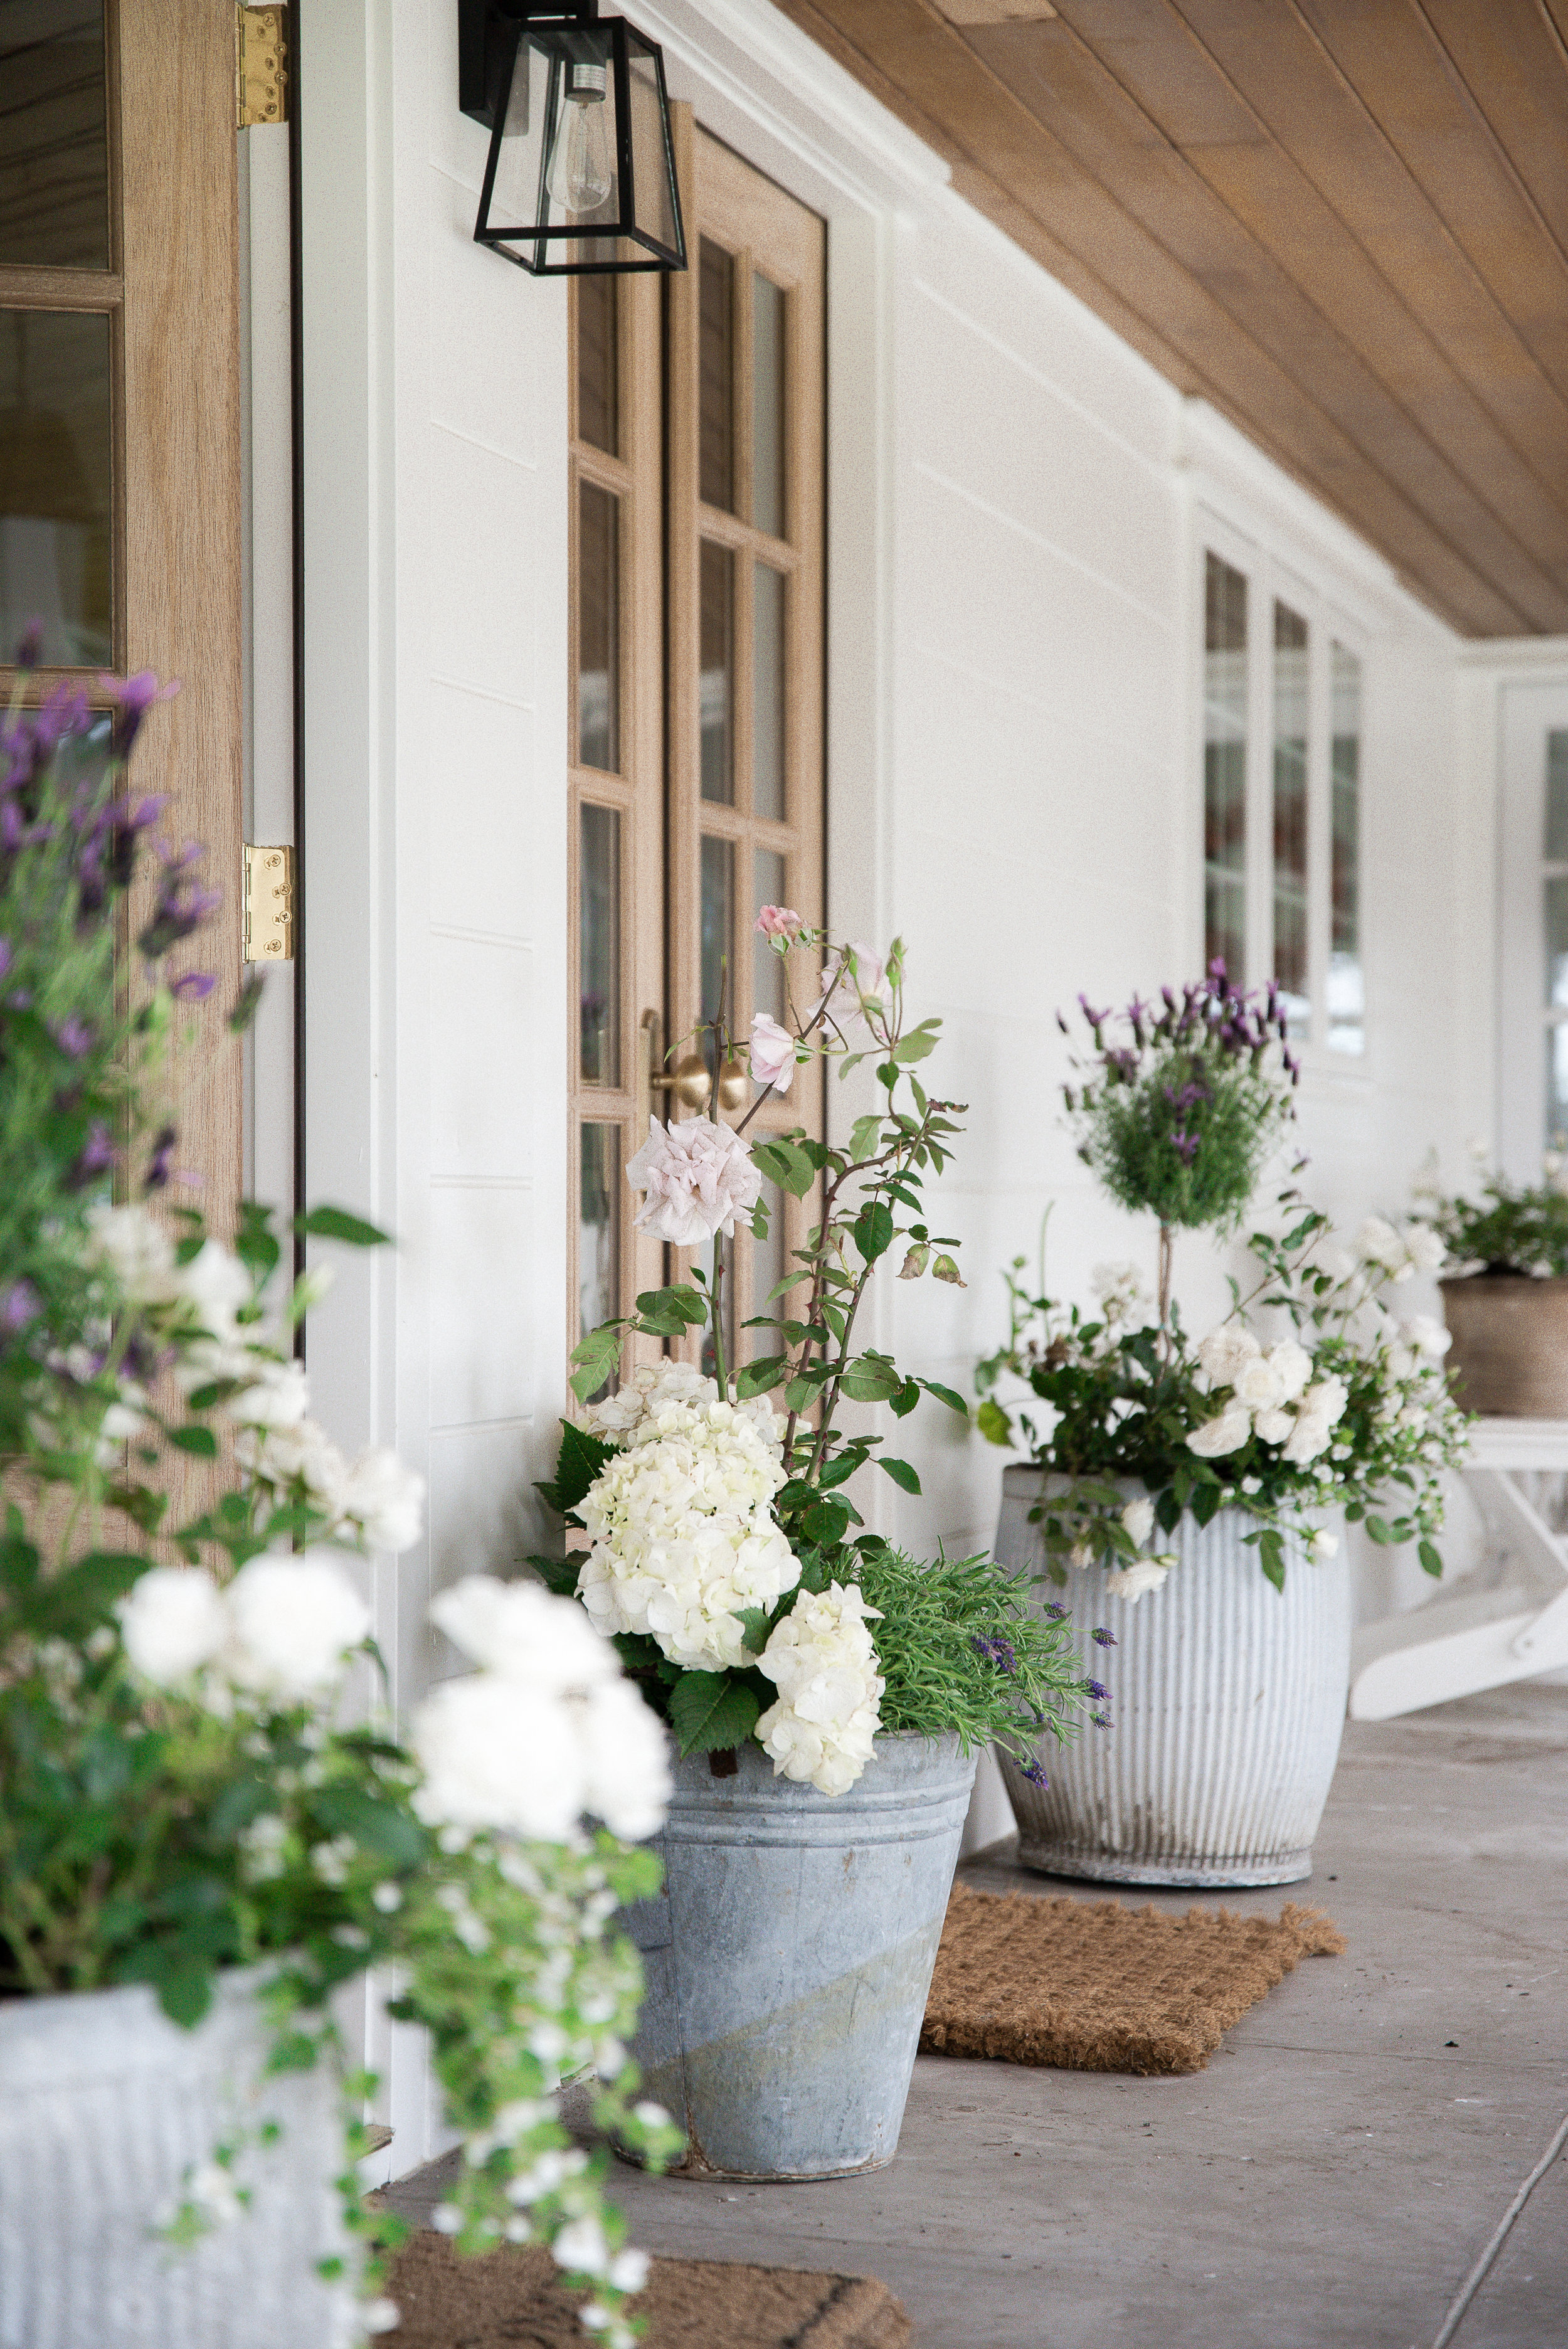 Beautiful farmhouse patio with wooden French doors and vintage galvanized pots from boxwood avenue.